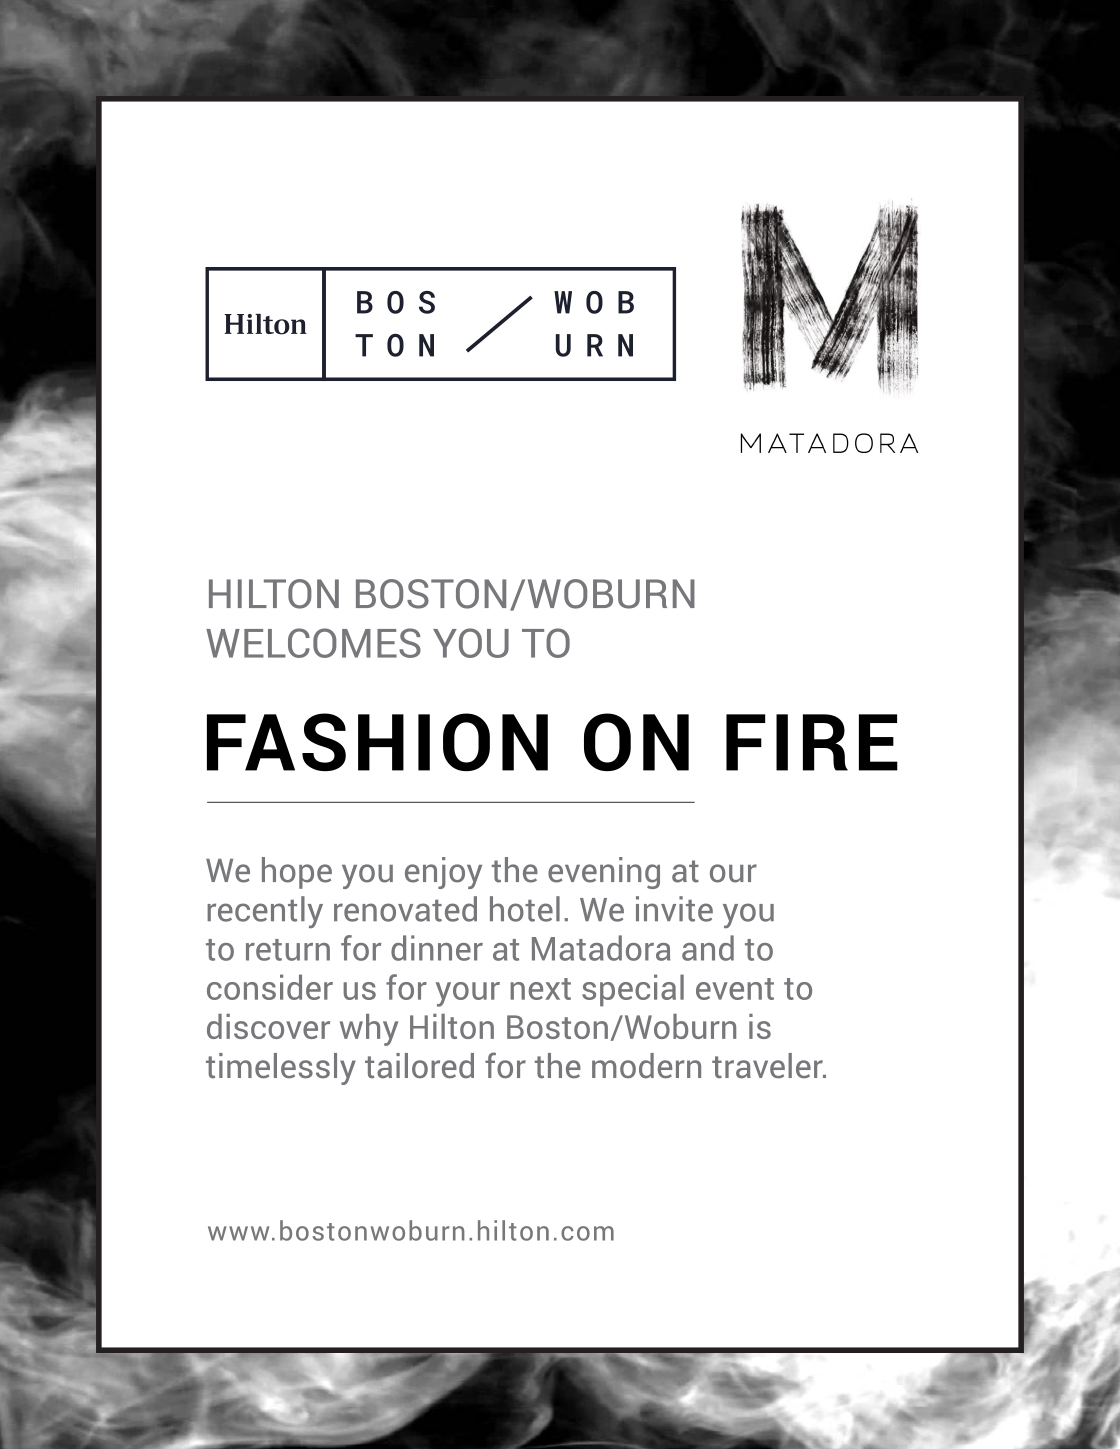 Woburn Hilton Fashion on Fire Advertisement